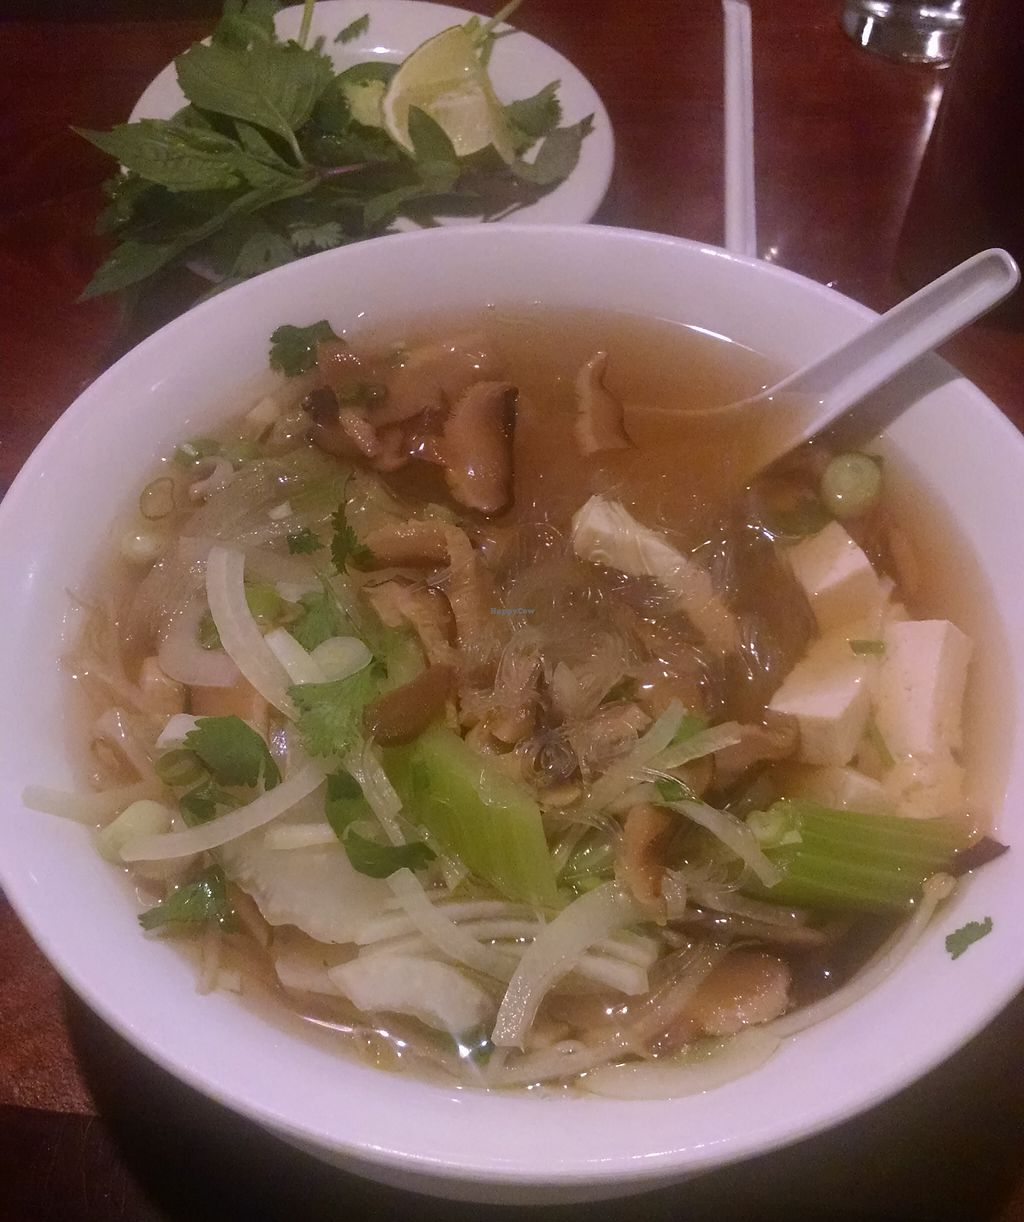 "Photo of Jazmine Cafe  by <a href=""/members/profile/ToriKriegel"">ToriKriegel</a> <br/>Glaze noodles, mushrooms, and tofu <br/> August 1, 2015  - <a href='/contact/abuse/image/26081/201438'>Report</a>"